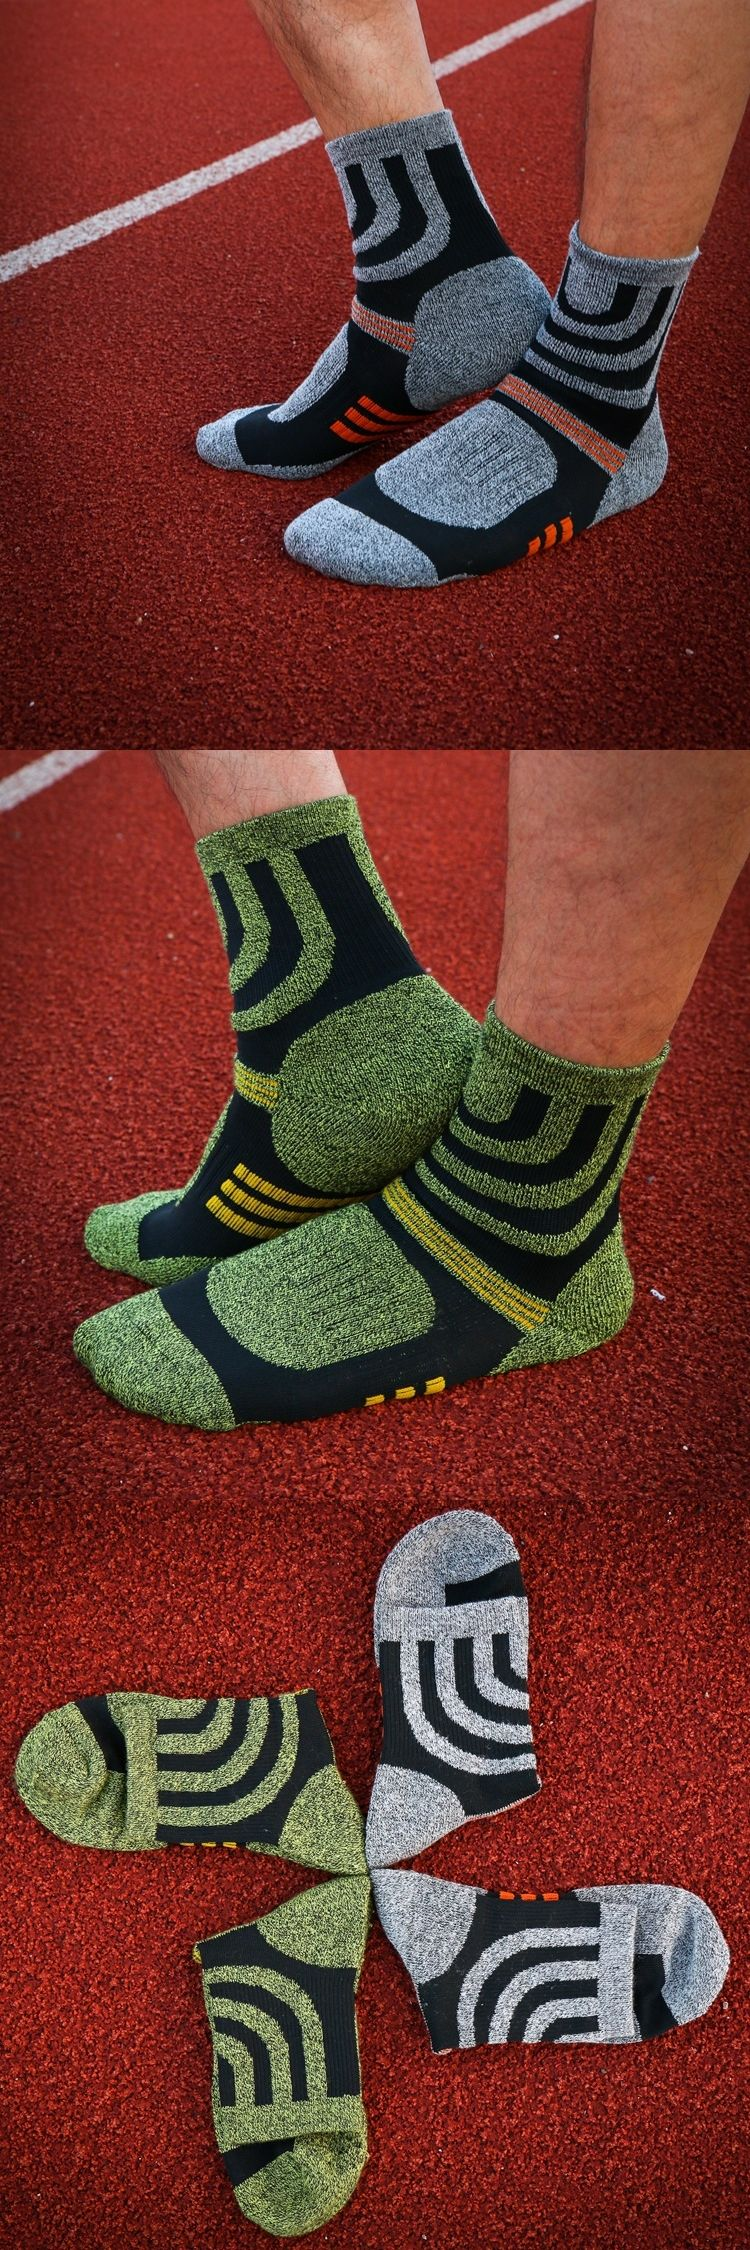 2017 New men cotton thick socks out door sox walking brand green white quick dry crew & 2017 New men cotton thick socks out door sox walking brand green ...